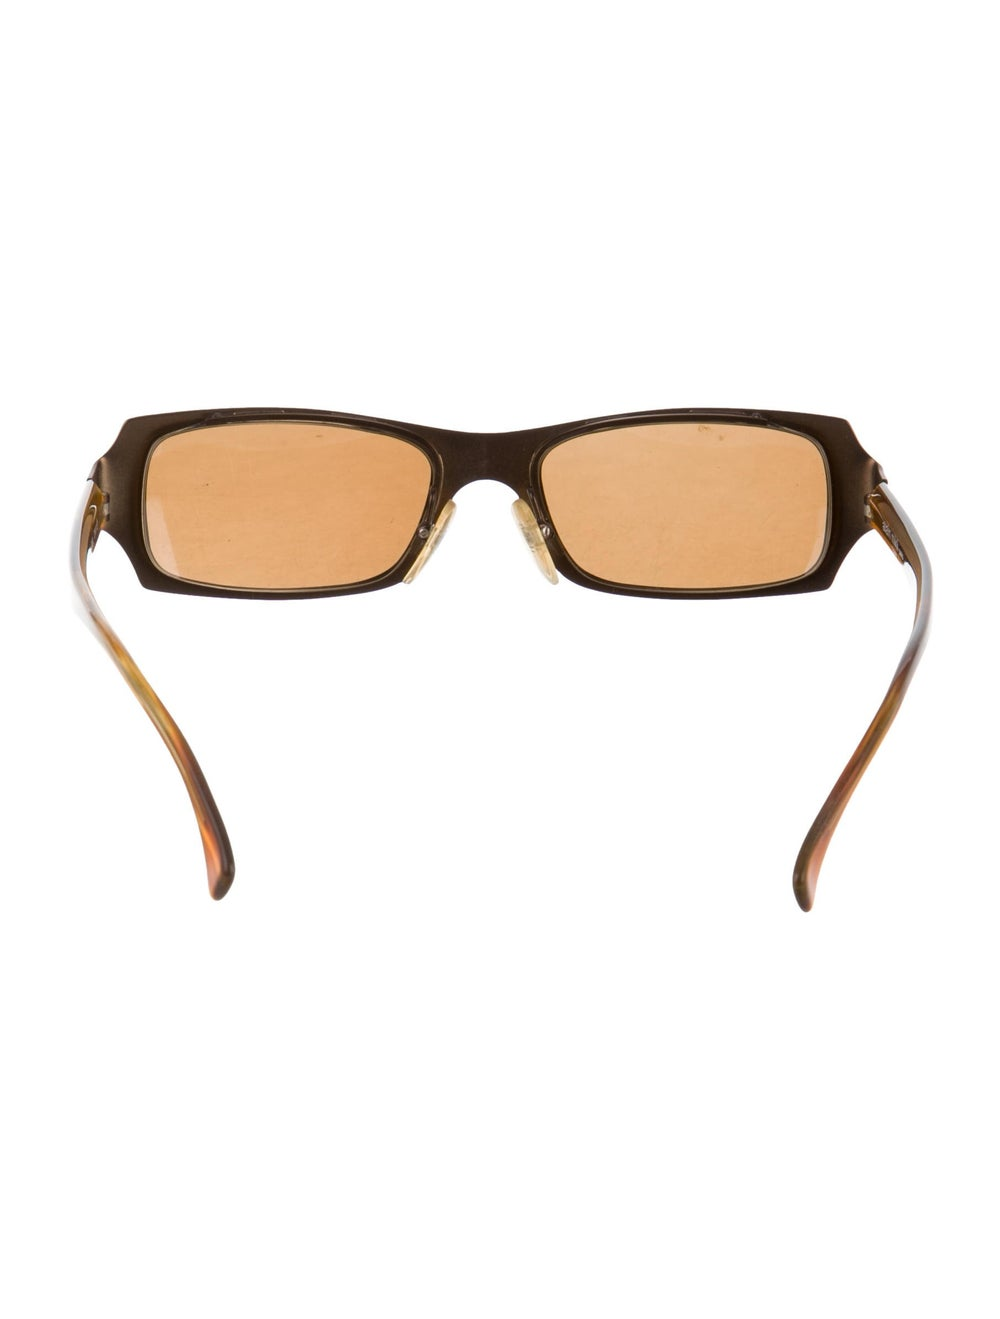 Alain Mikli Tinted Narrow Sunglasses Brown - image 3